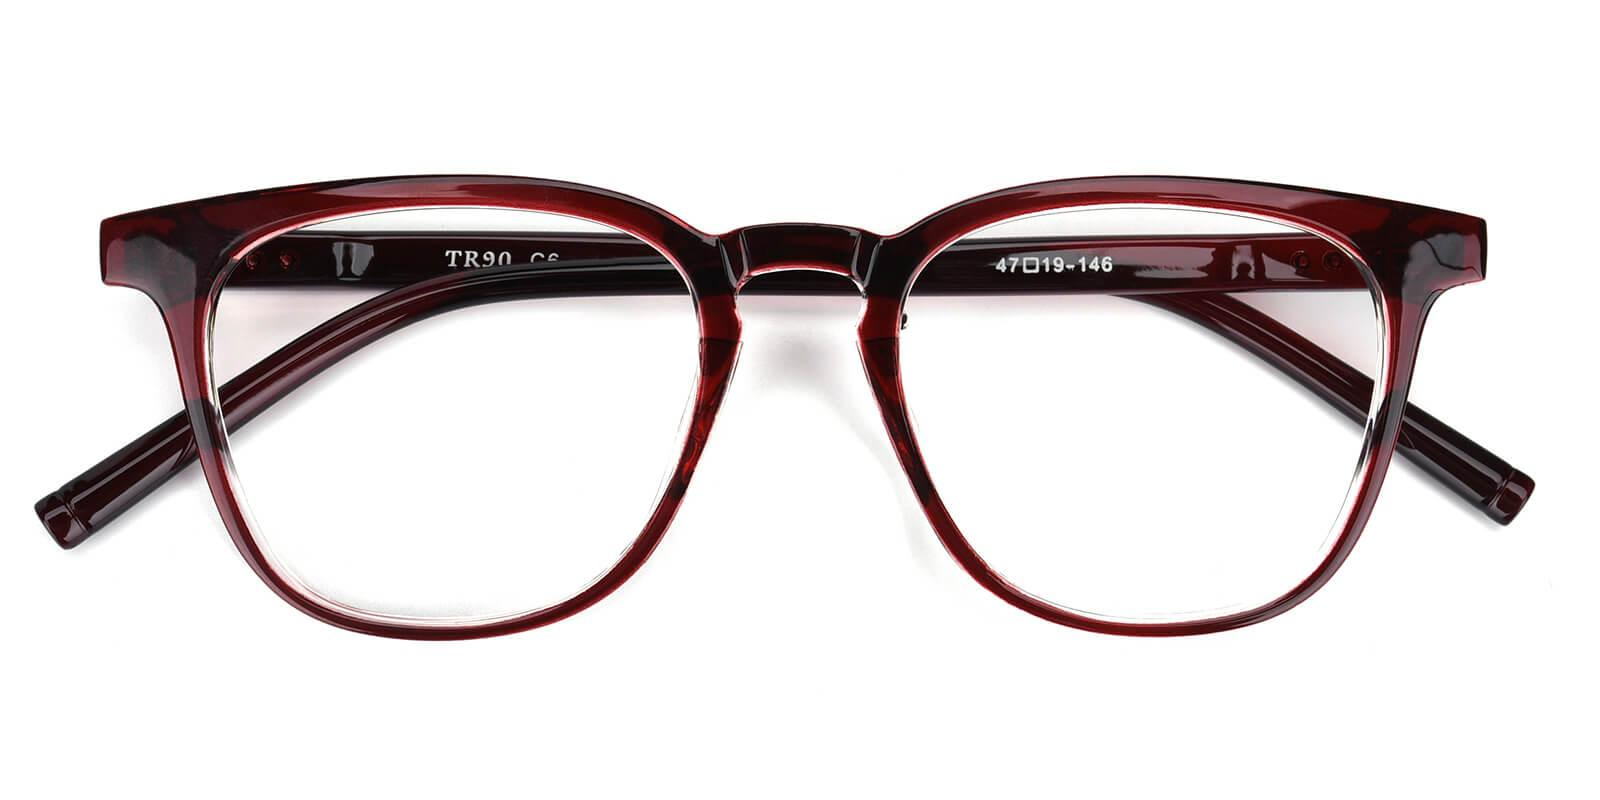 Heartbeat-Red-Square-TR-Eyeglasses-detail